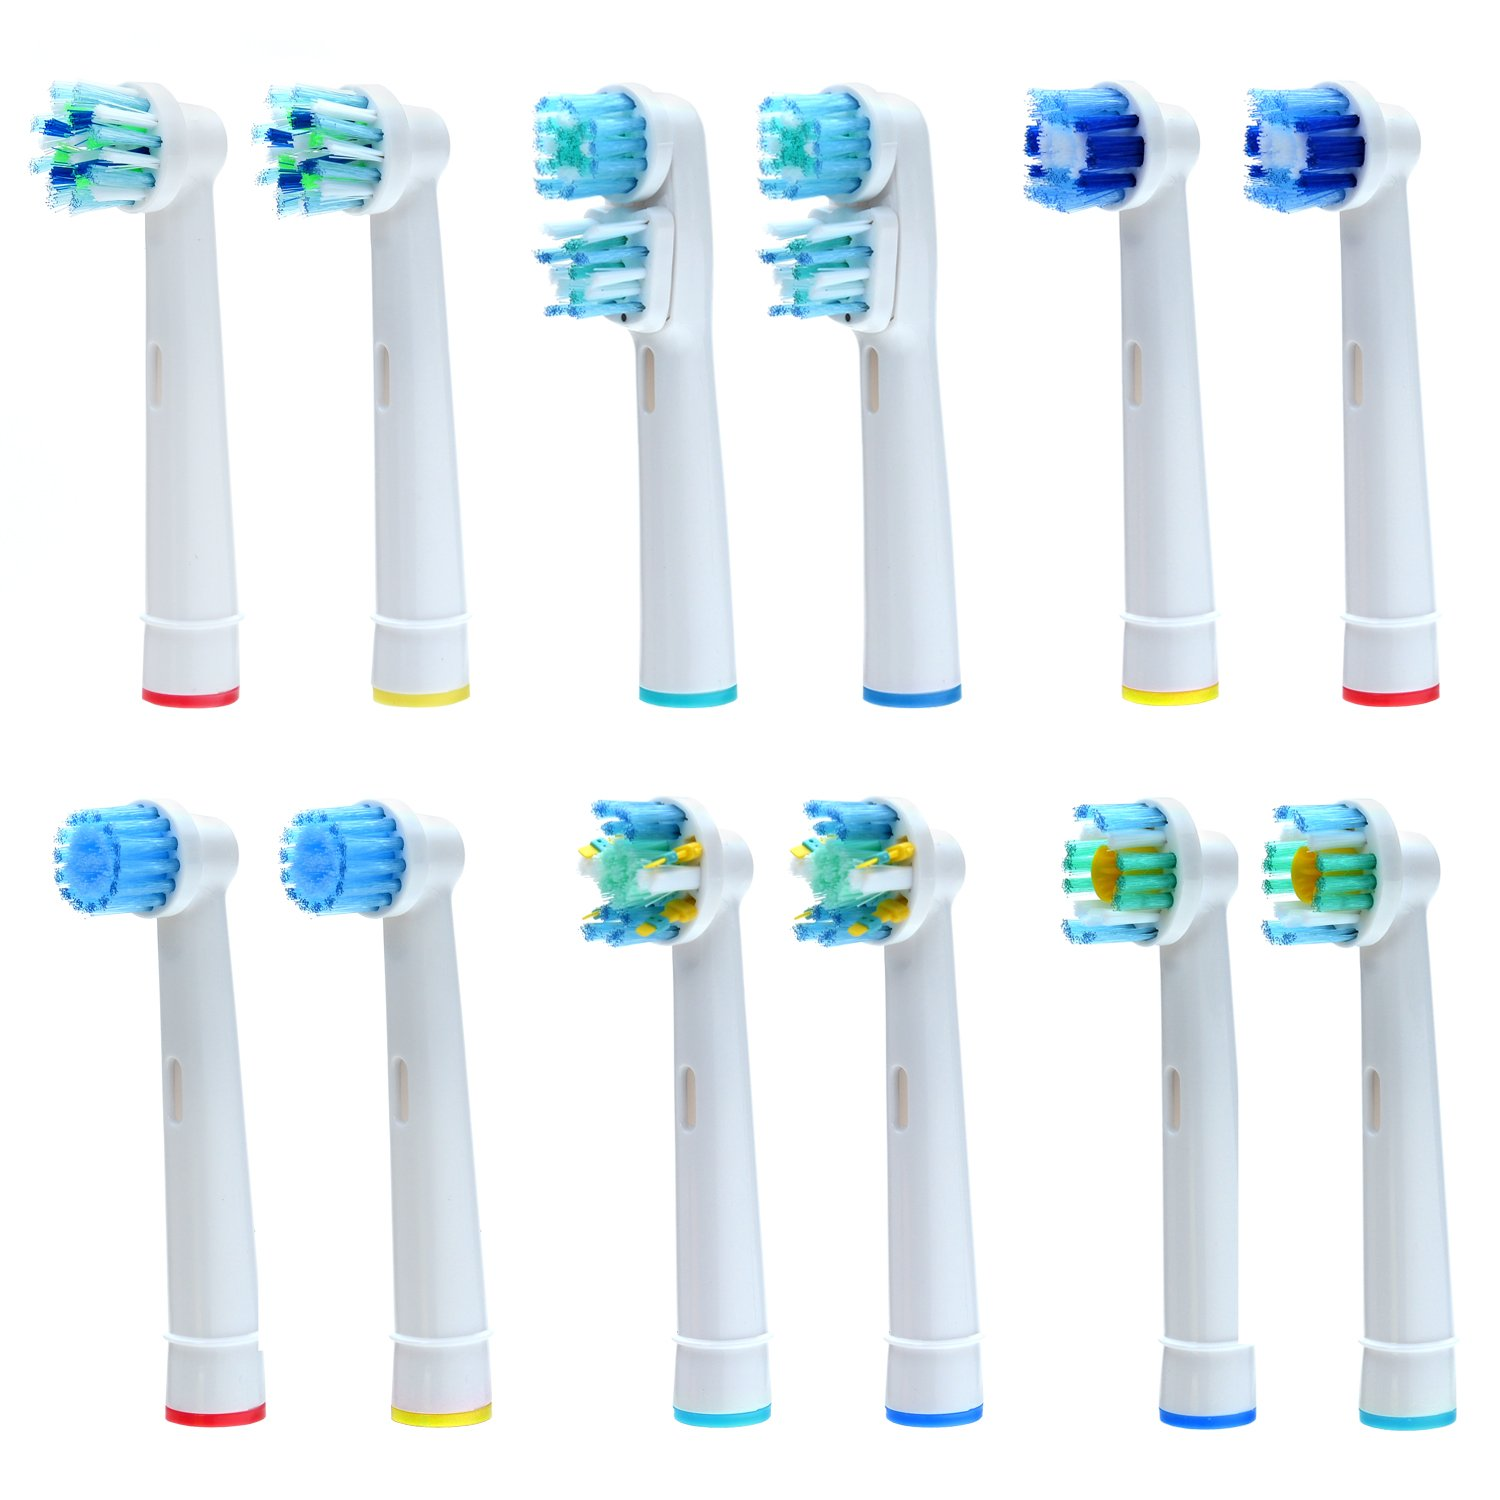 AGPtEK® 8PCS Premium Replacement Toothbrush Heads Set for Oral B Braun - 4 Regular Brush Heads & 4 Soft Round Heads with Health & Safety Standard for Total Mouth Cleaning HB0026-MXFBA